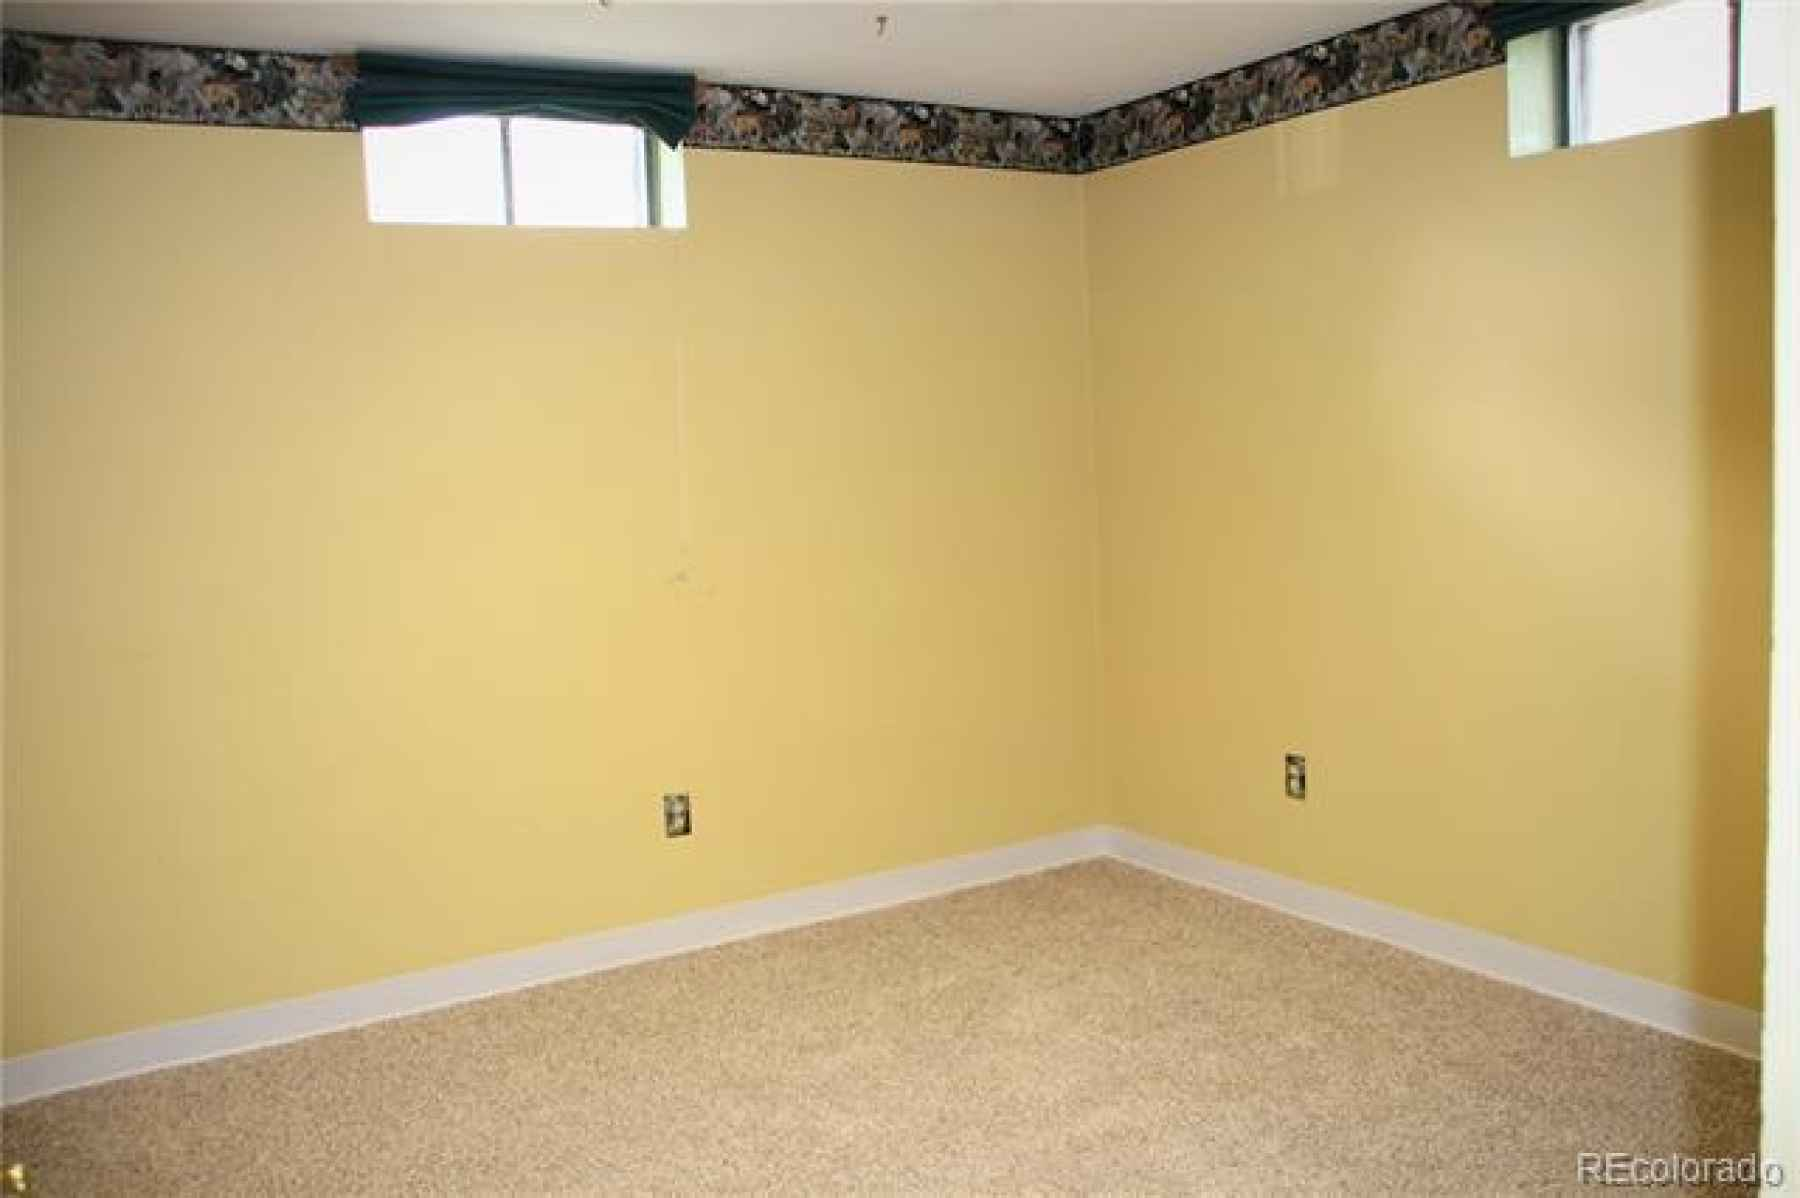 bedroom in basement has large closet, but small windows